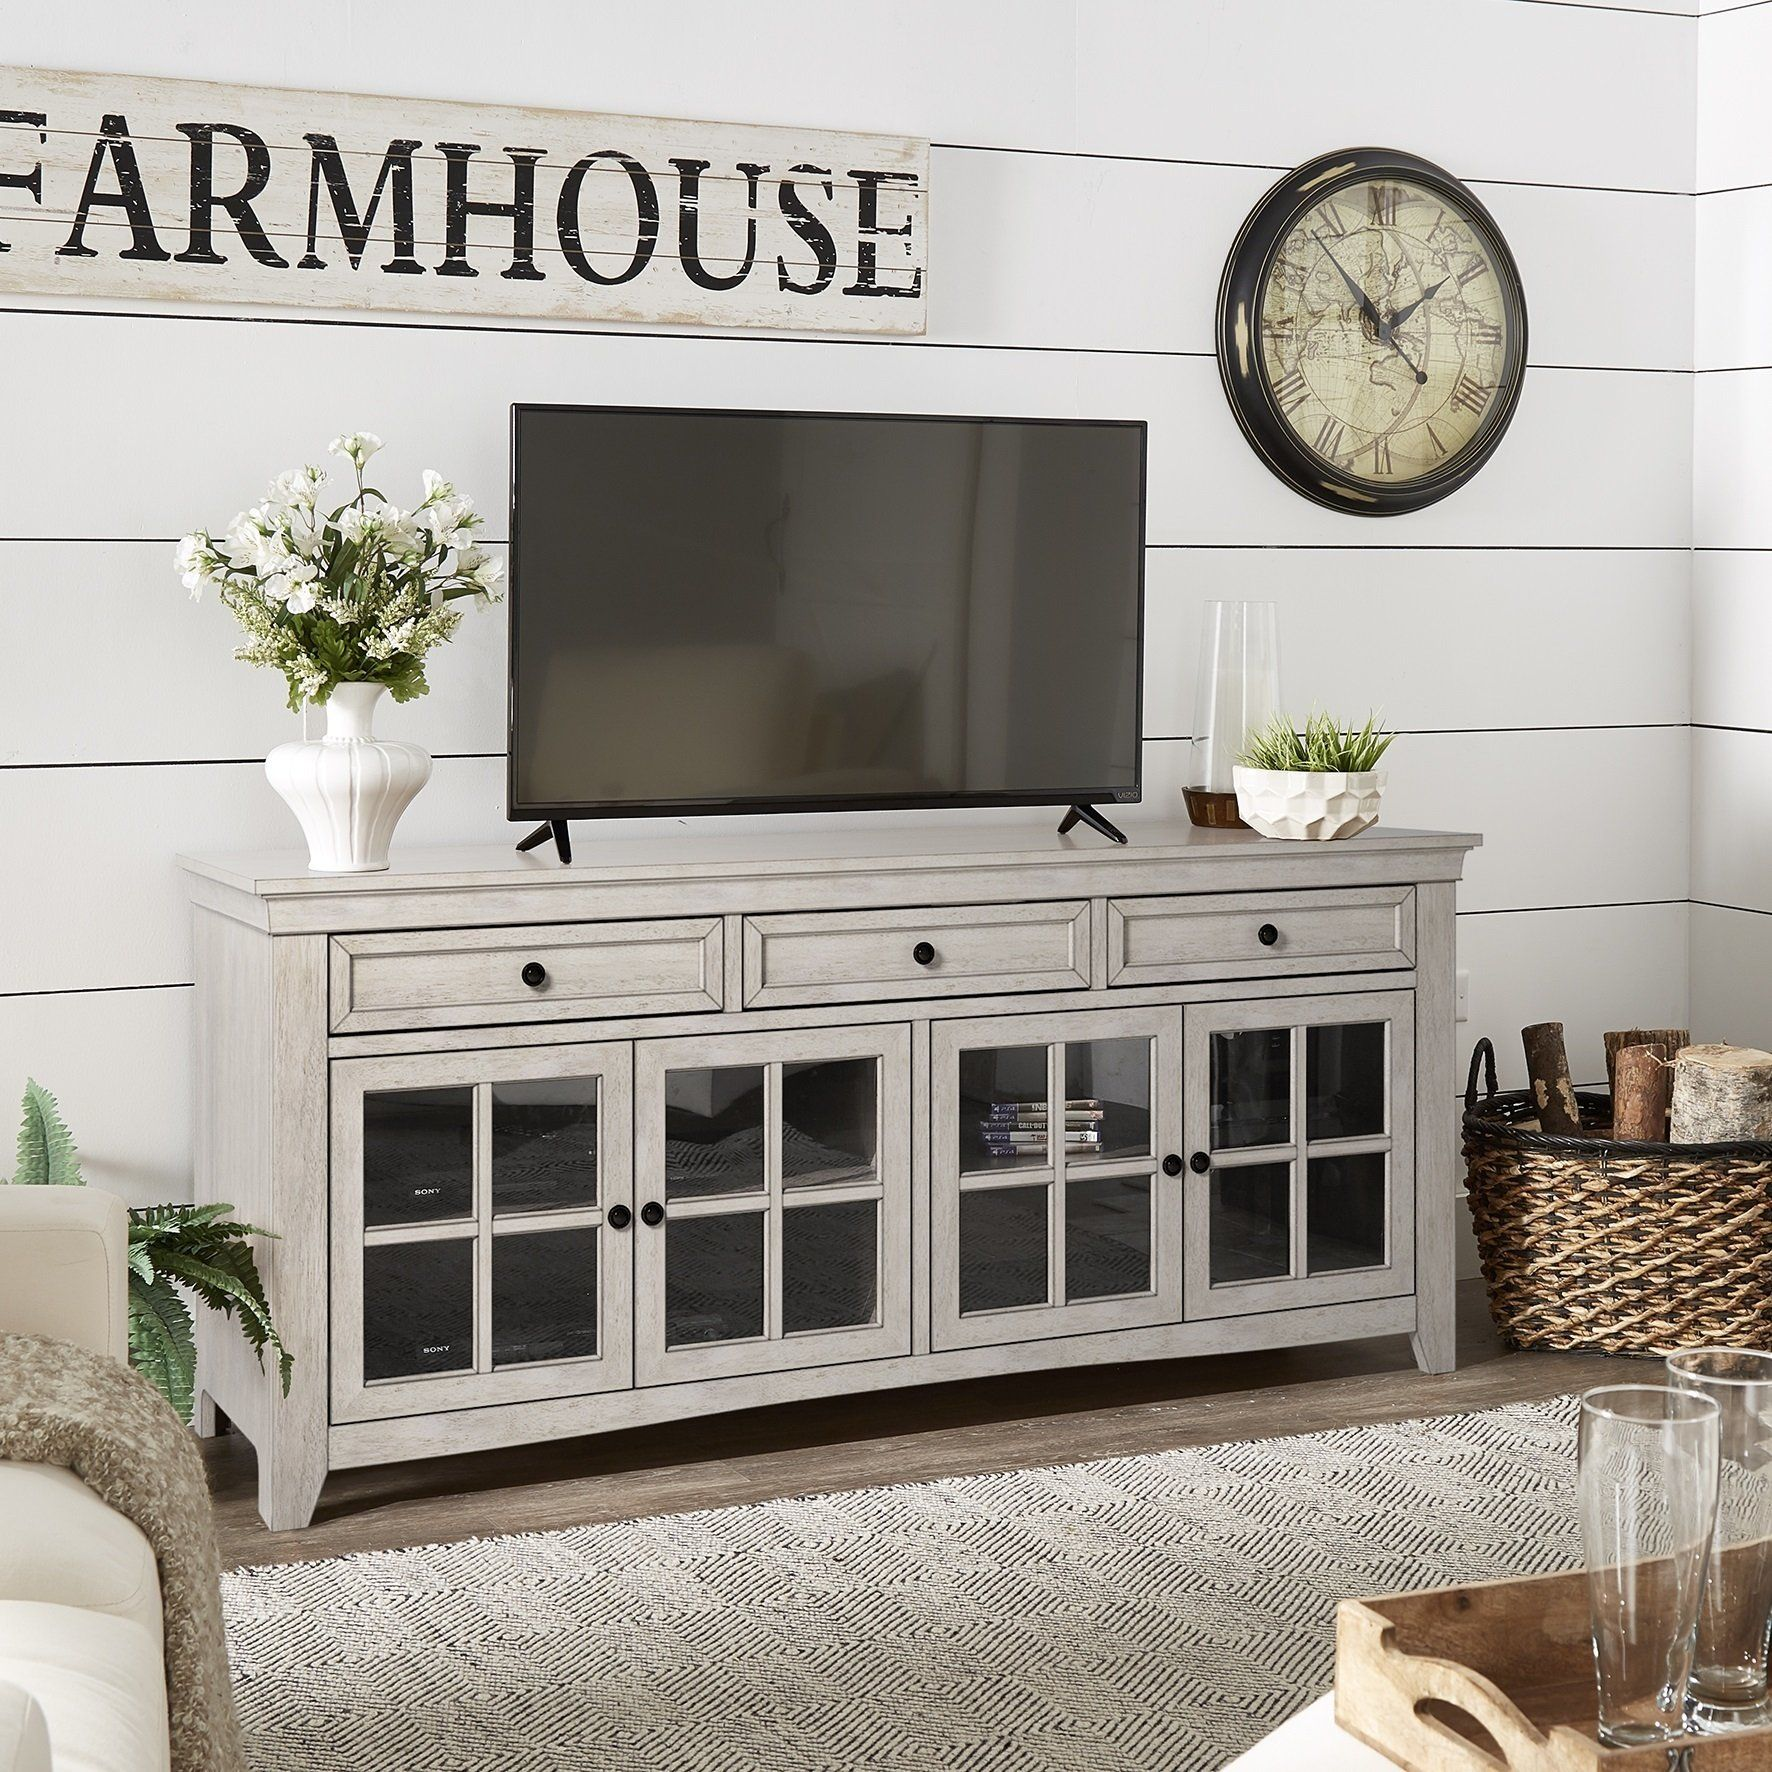 Our Best Living Room Furniture Deals Tv Stand With Glass Doors Living Room Tv Wall Tv Wall Decor Console table with glass doors